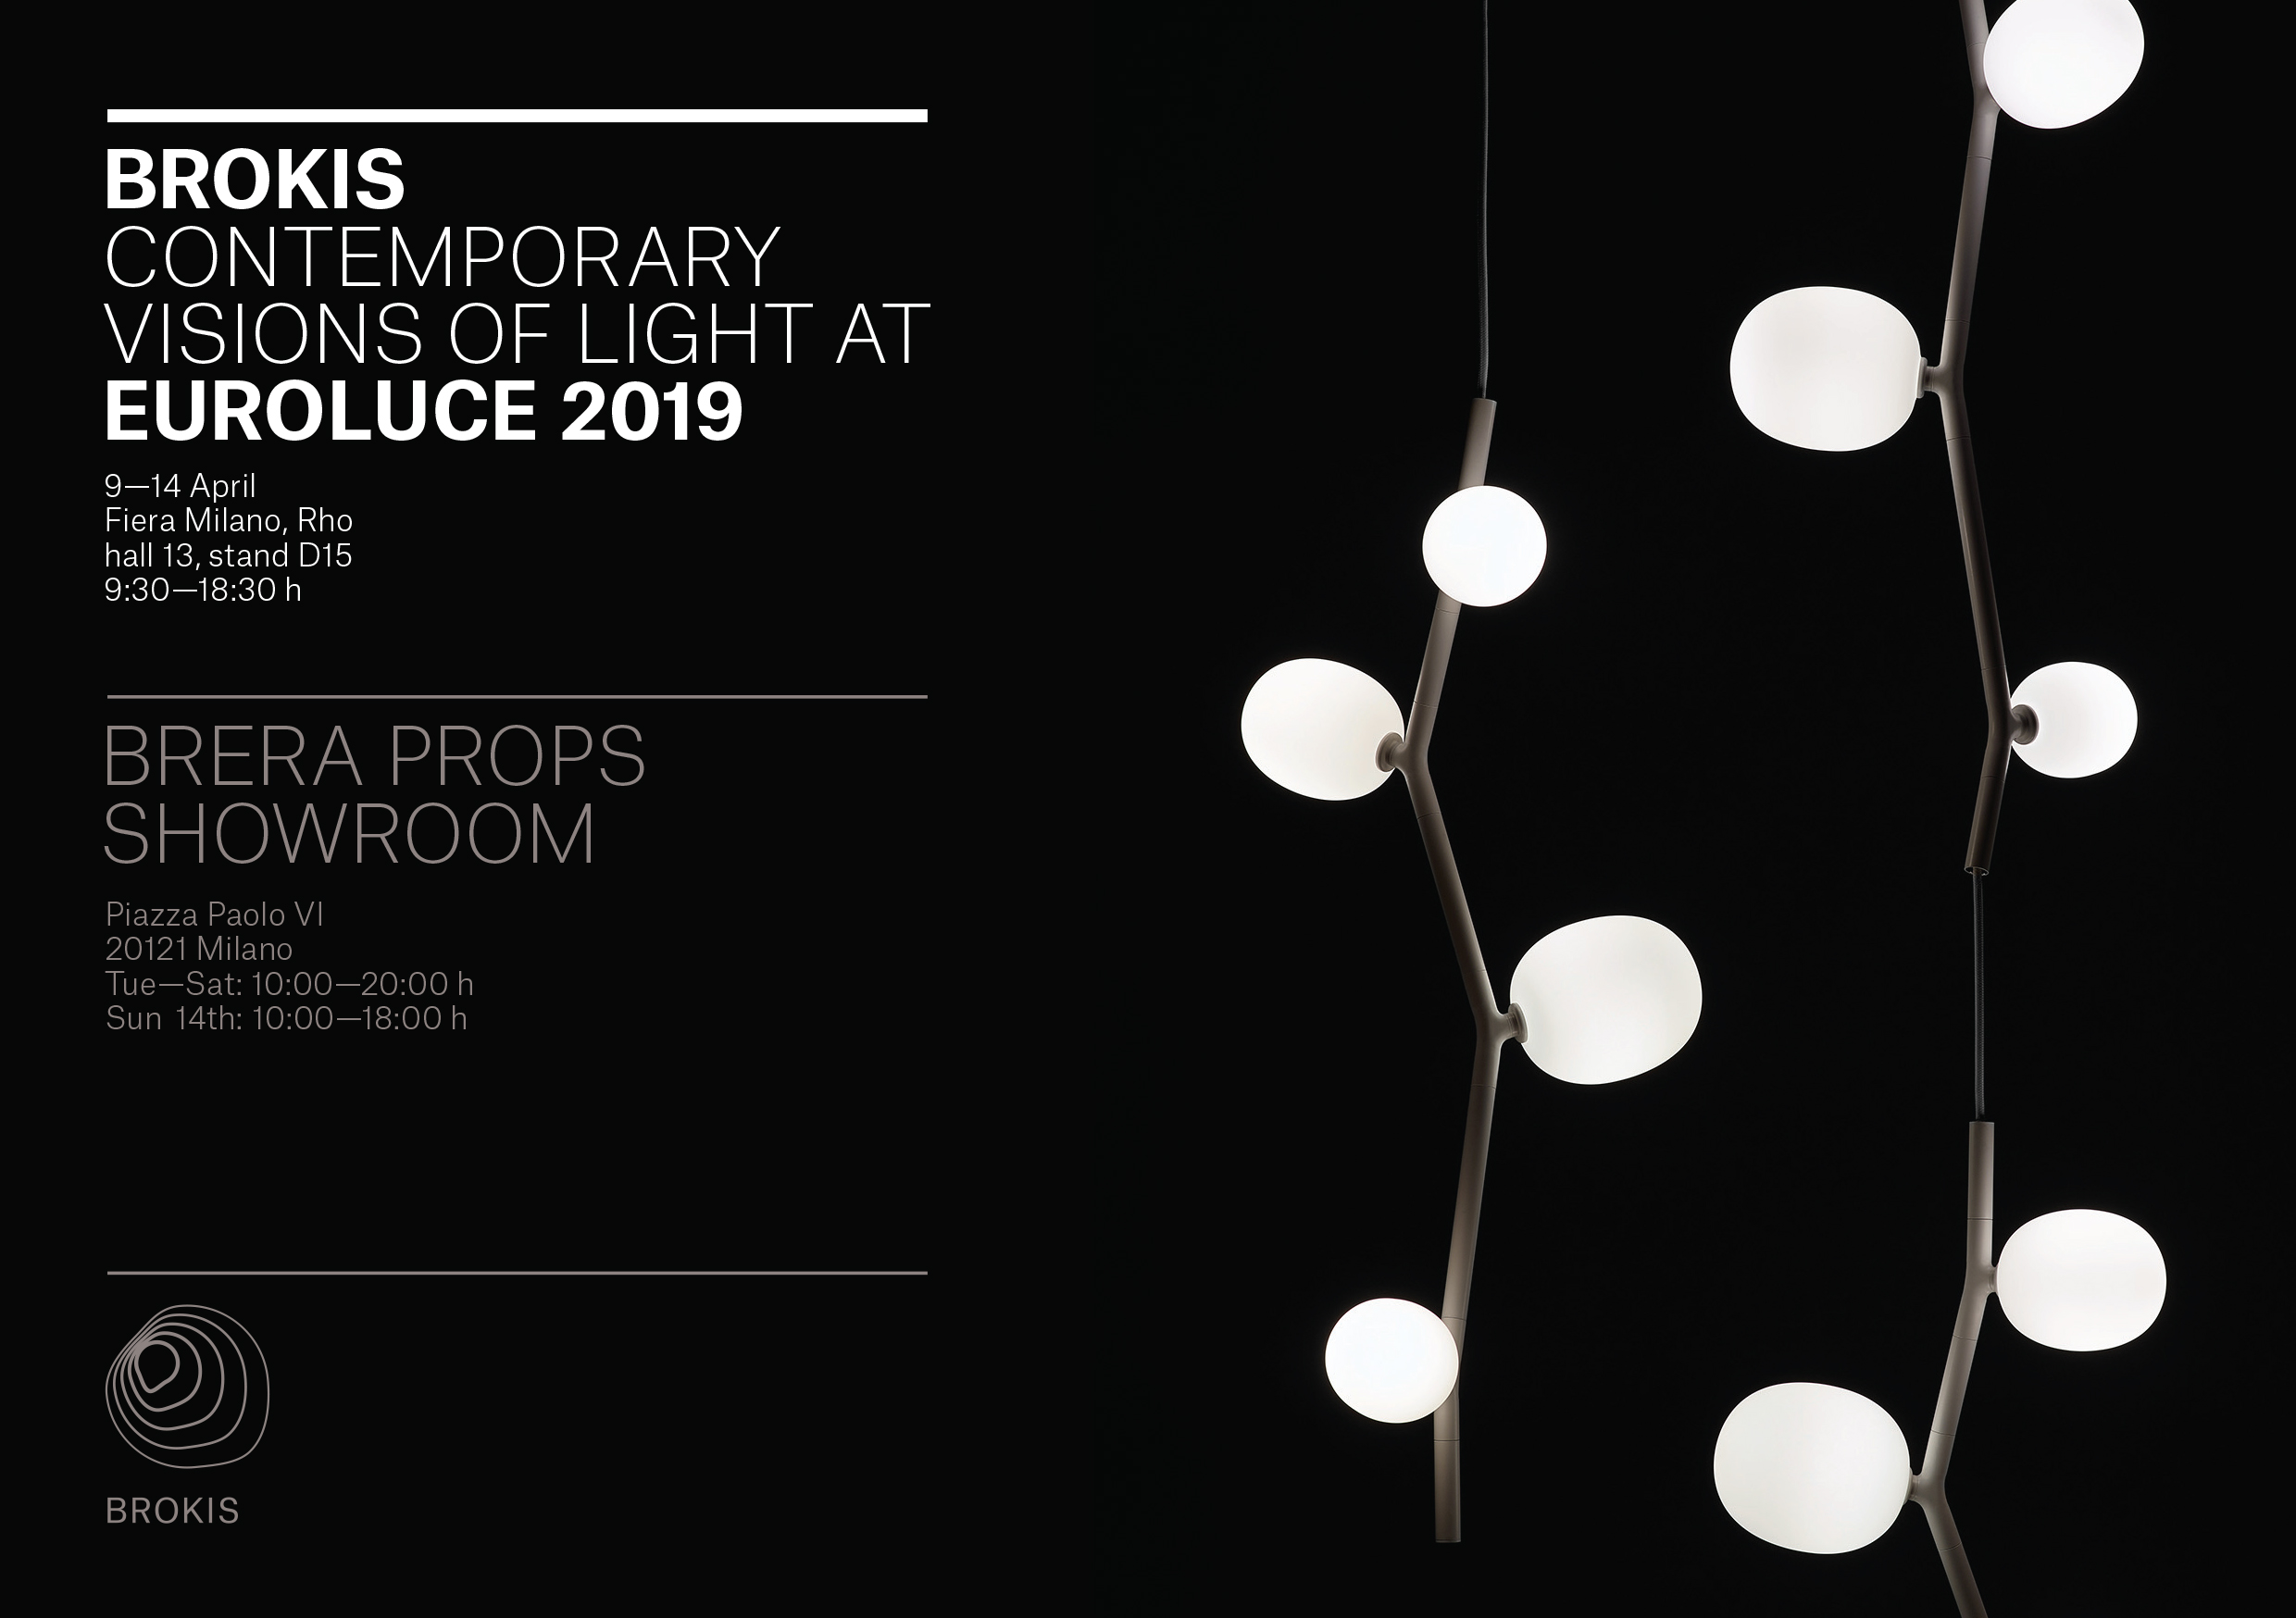 BROKIS | SALONE DEL MOBILE 2019 Milan